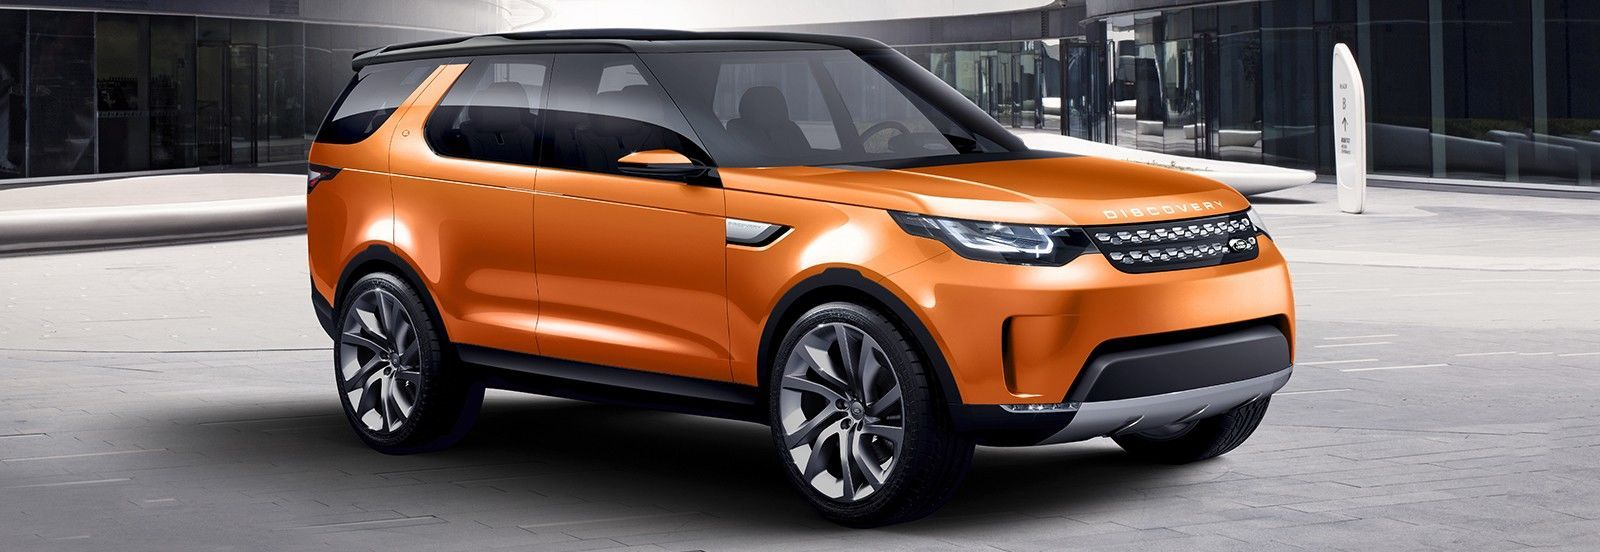 Land rover has released the first official images showing the new discovery 5 without camouflage for